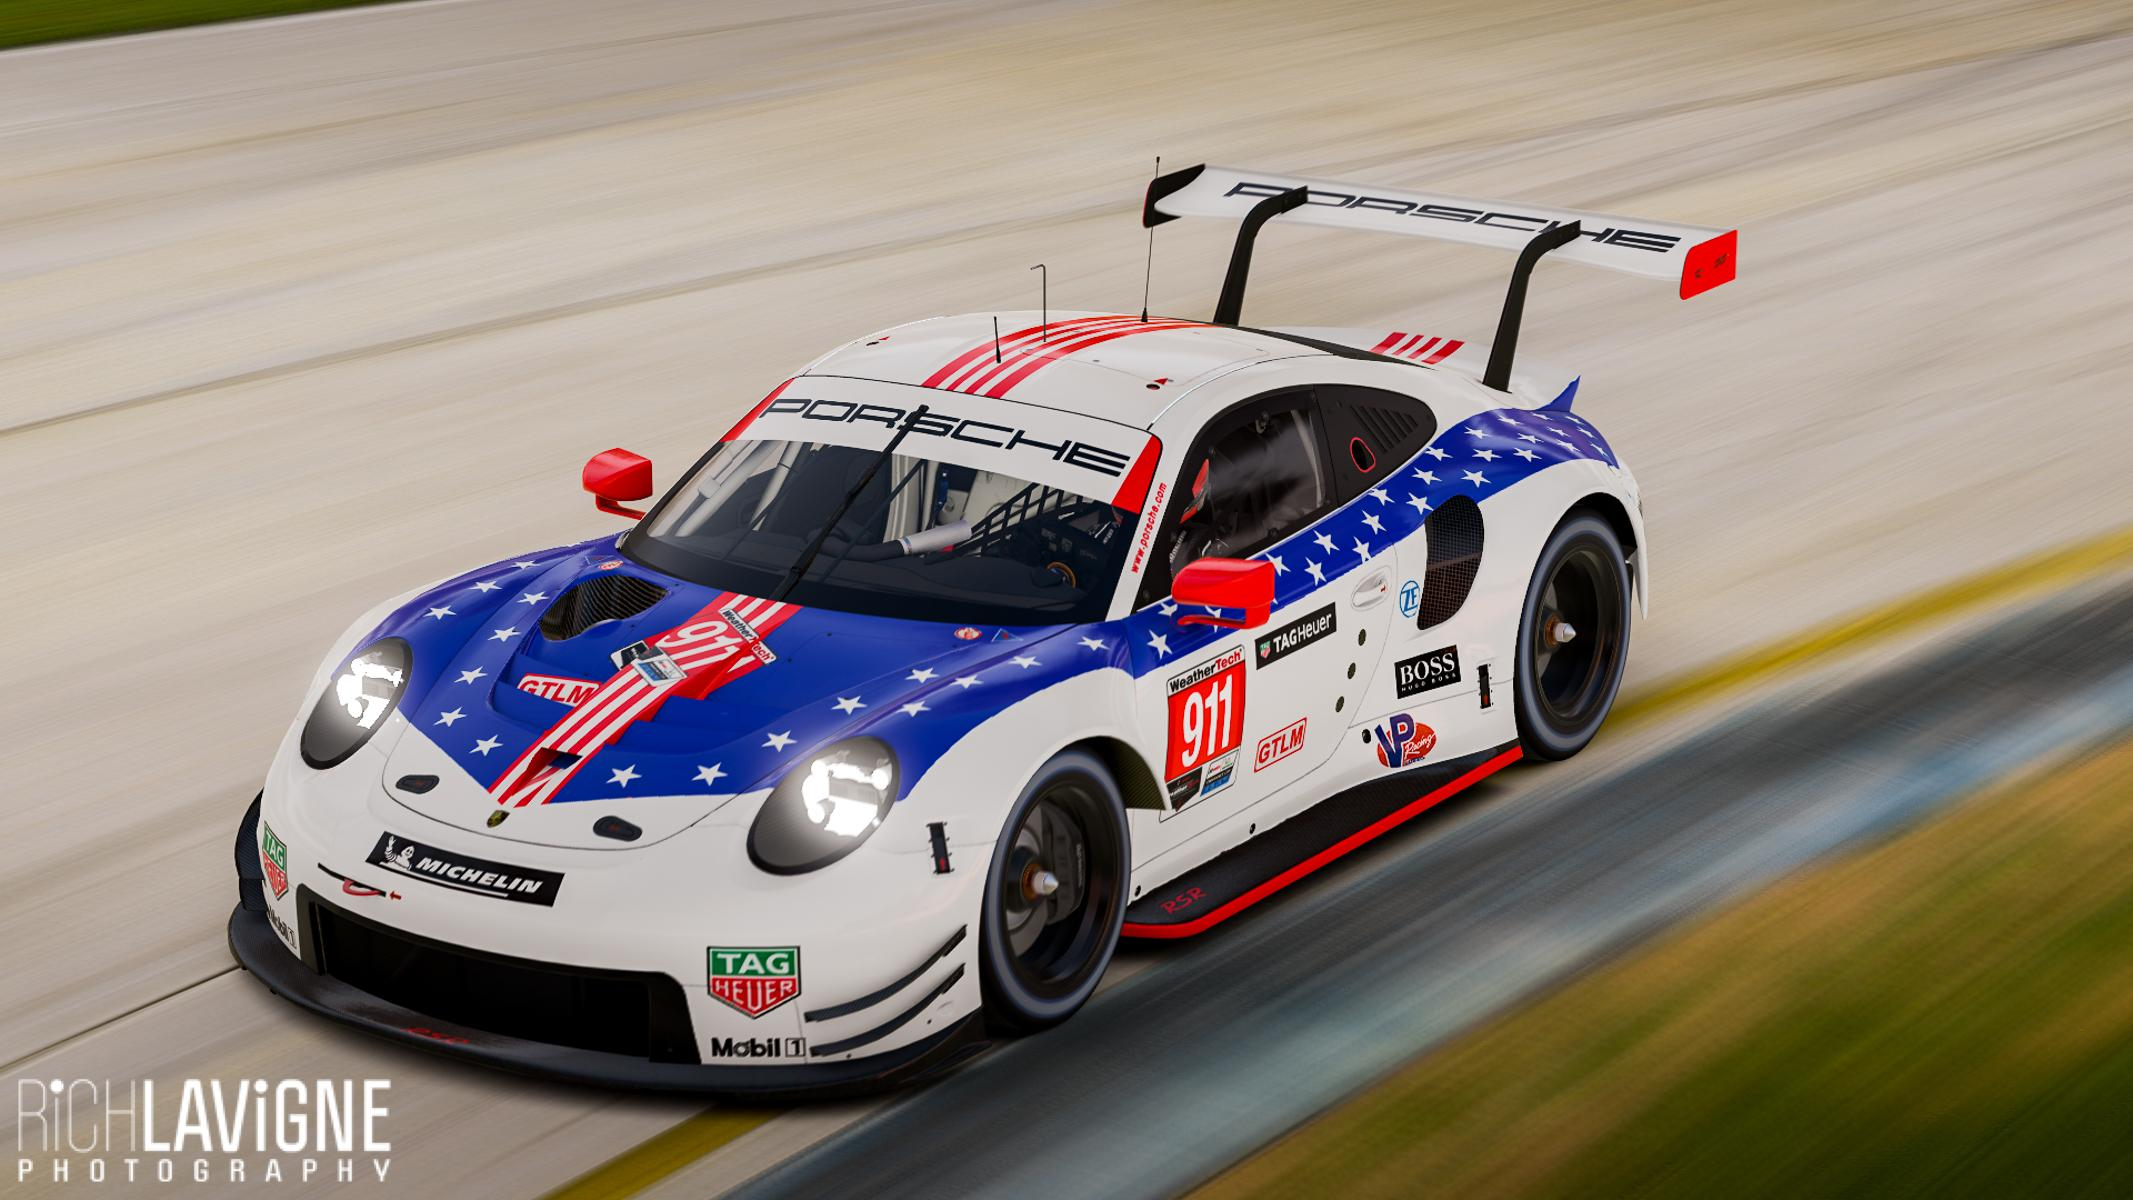 Preview of Porsche Thank You 911 RSR by Richard Lavigne